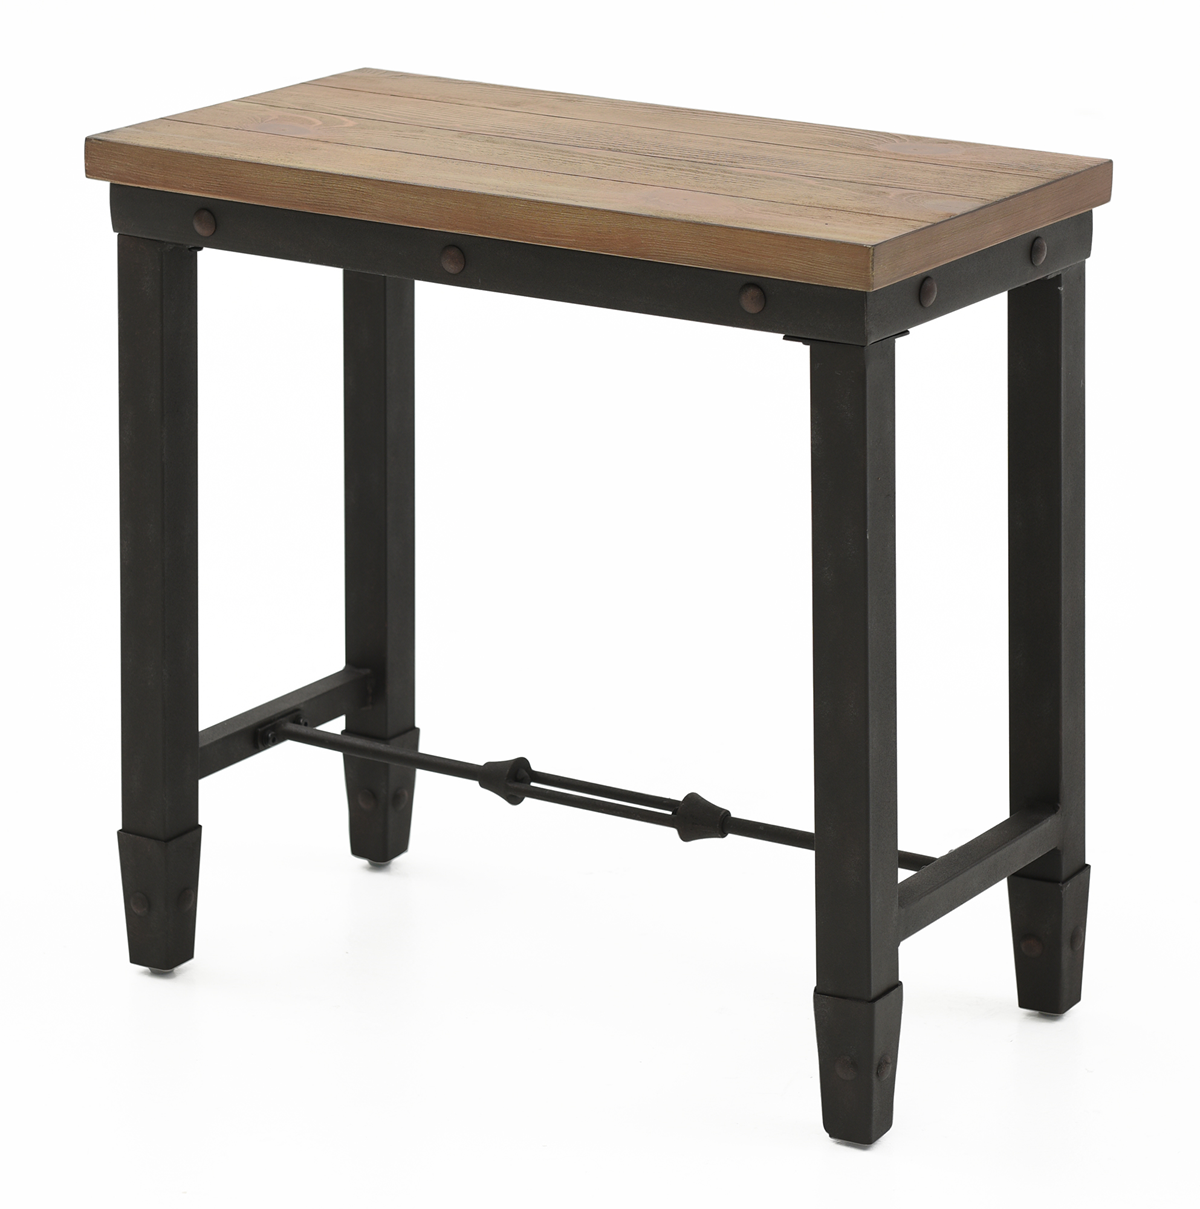 furniture cool chairside table for living room design well universal buckingham and christopher power groton carly end tables tab accent with grey metal coffee ashley nesting